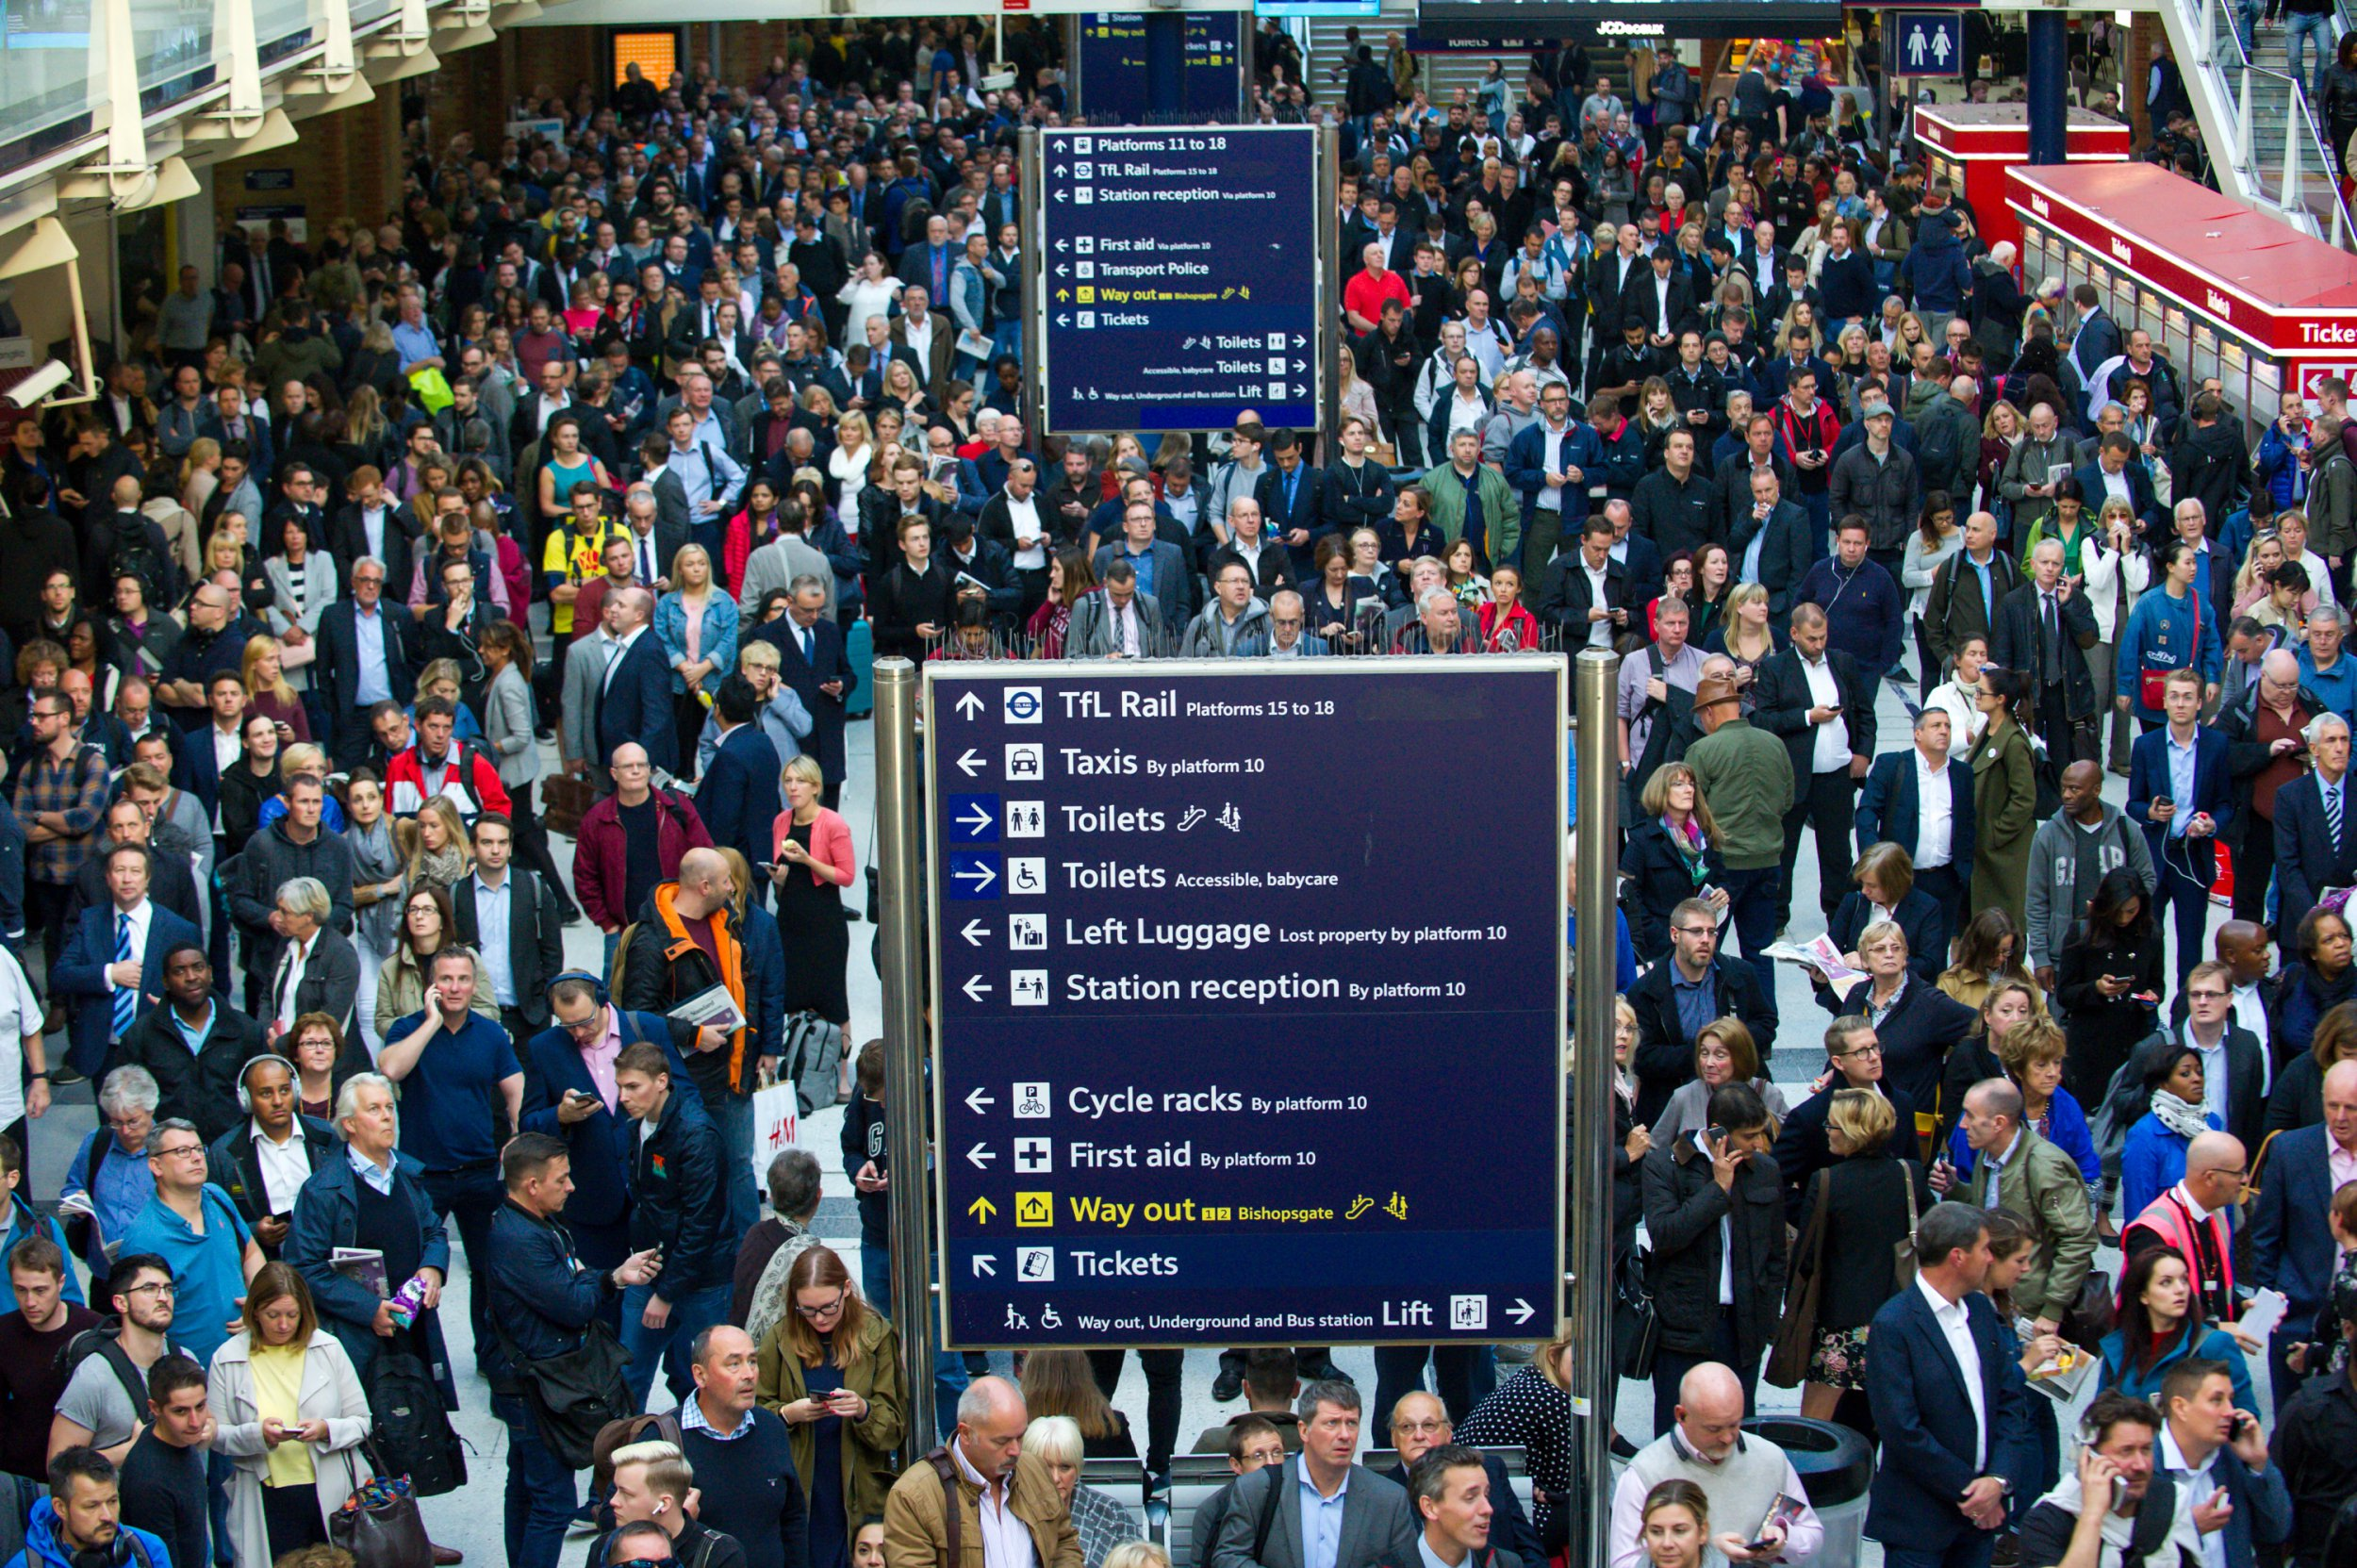 Image ??Licensed to i-Images Picture Agency. 24/09/2018. London, United Kingdom. London Liverpool Street travel chaos. View of the Liverpool Street Station. Hundreds of commuters are gathered in front of the timetables screens waiting to the end of the chaos. Abellio Greater Anglia told passengers not to travel after the person was hit between Goodmayes and Romford. All trains are at a standstill unable to move on the crucial part of the network which connects London with all other destinations. All train services between London Liverpool Street and Shenfield, Southend Victoria, Braintree, Colchester, Ipswich and Norwich are affected. Delays of up to two hours are expected while emergency services deal with the incident. Picture by Gustavo Valiente / i-Images